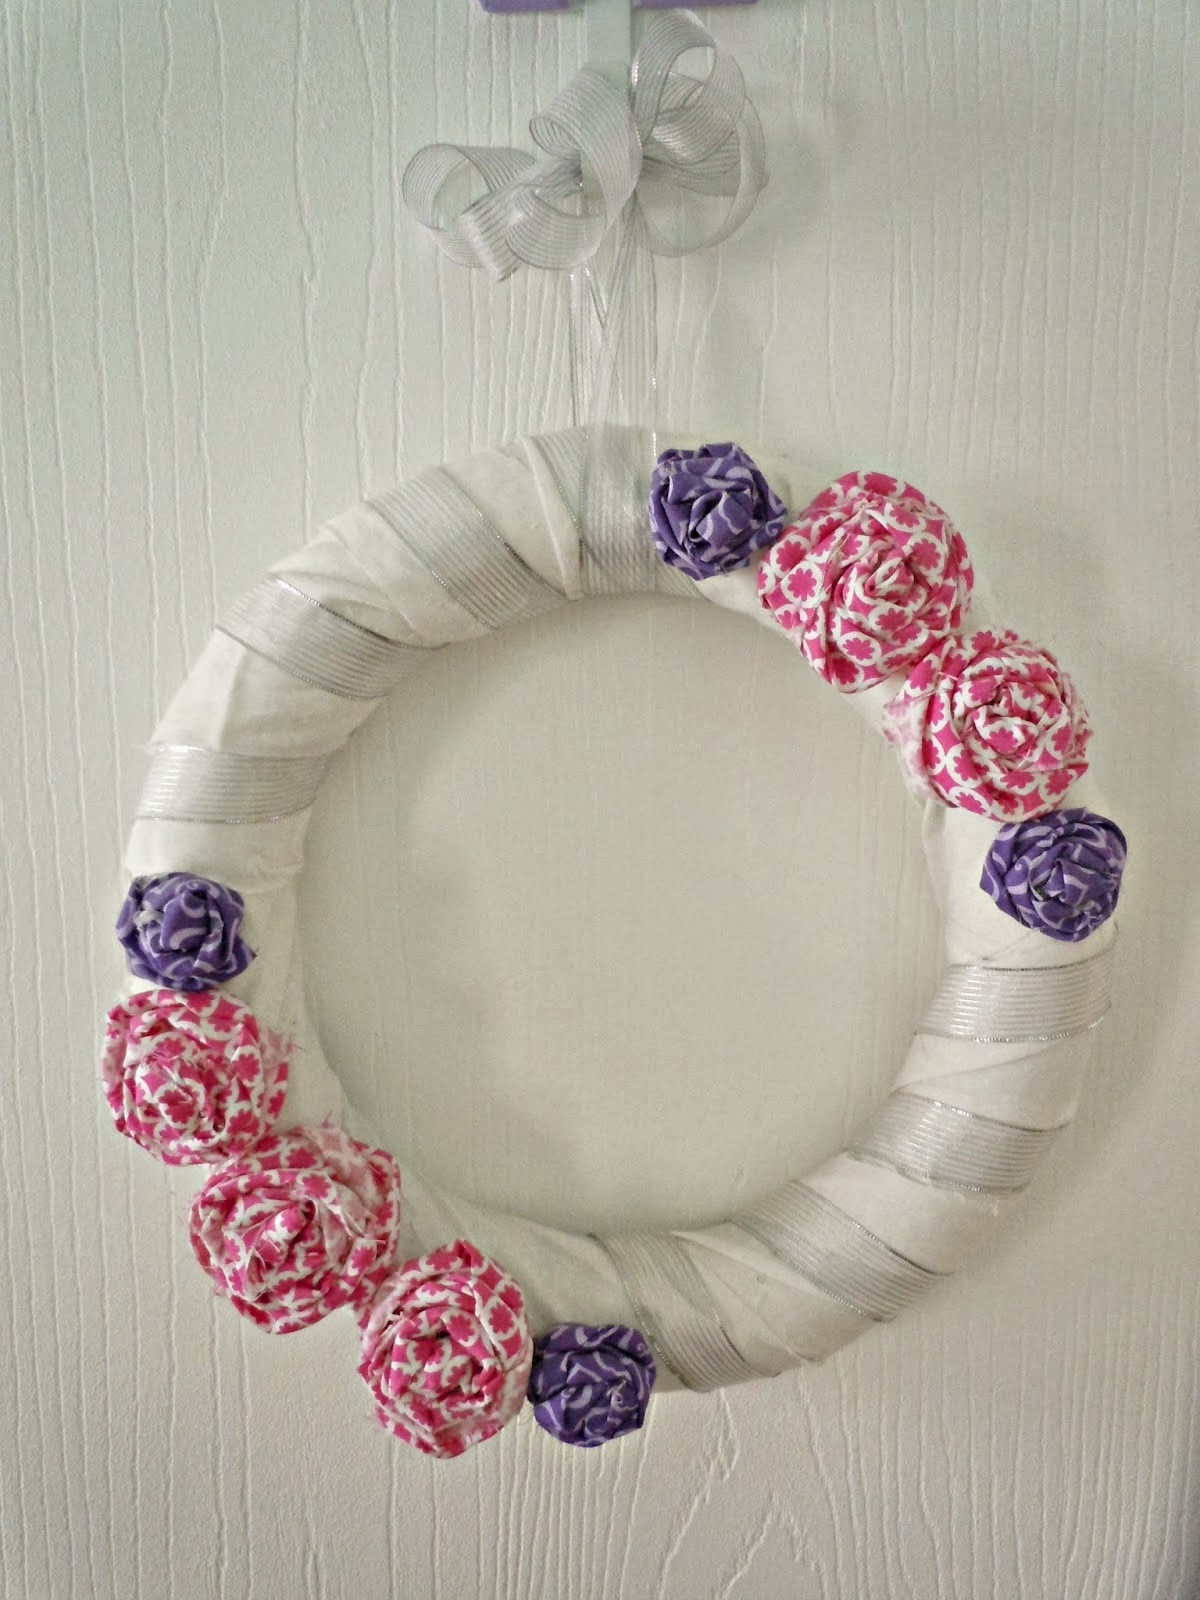 http://www.lifealittlebrighter.com/2013/02/fabric-rose-wreath.html